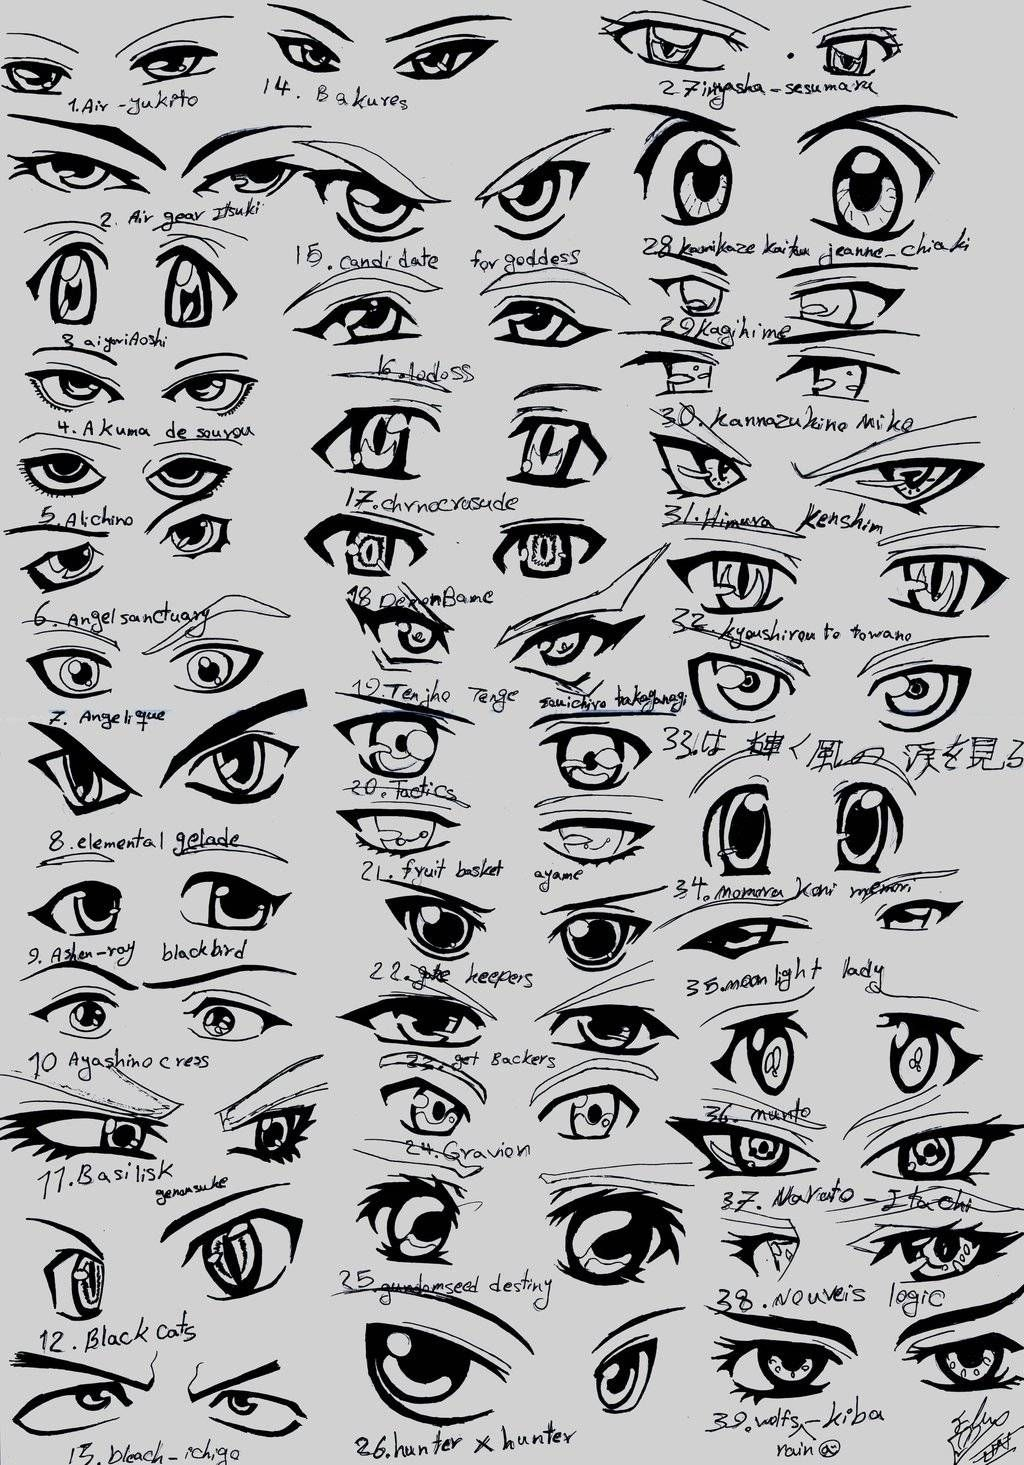 How To Draw Male Anime Eyes Widescreen 2 Hd Wallpapers How To Draw Anime Eyes Anime Eye Drawing Manga Eyes